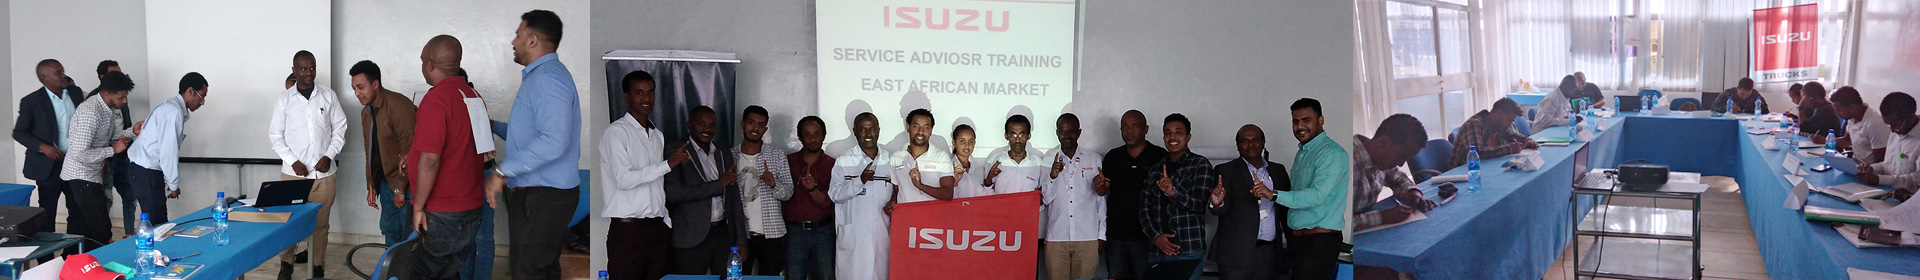 Isuzu Conducted Service Training for East Africa Banner